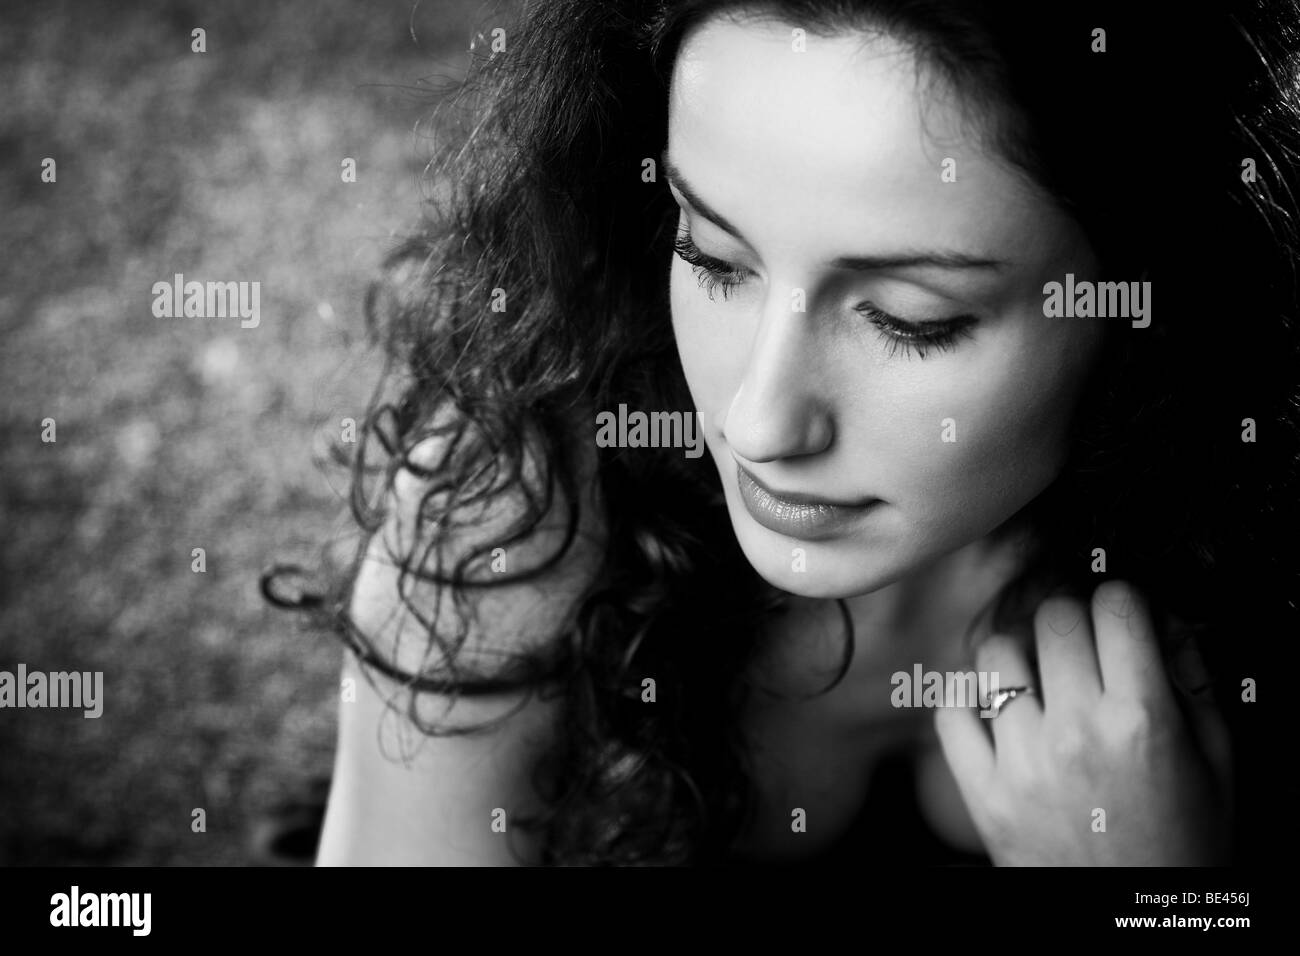 Young woman pensive portrait. Black and white. - Stock Image